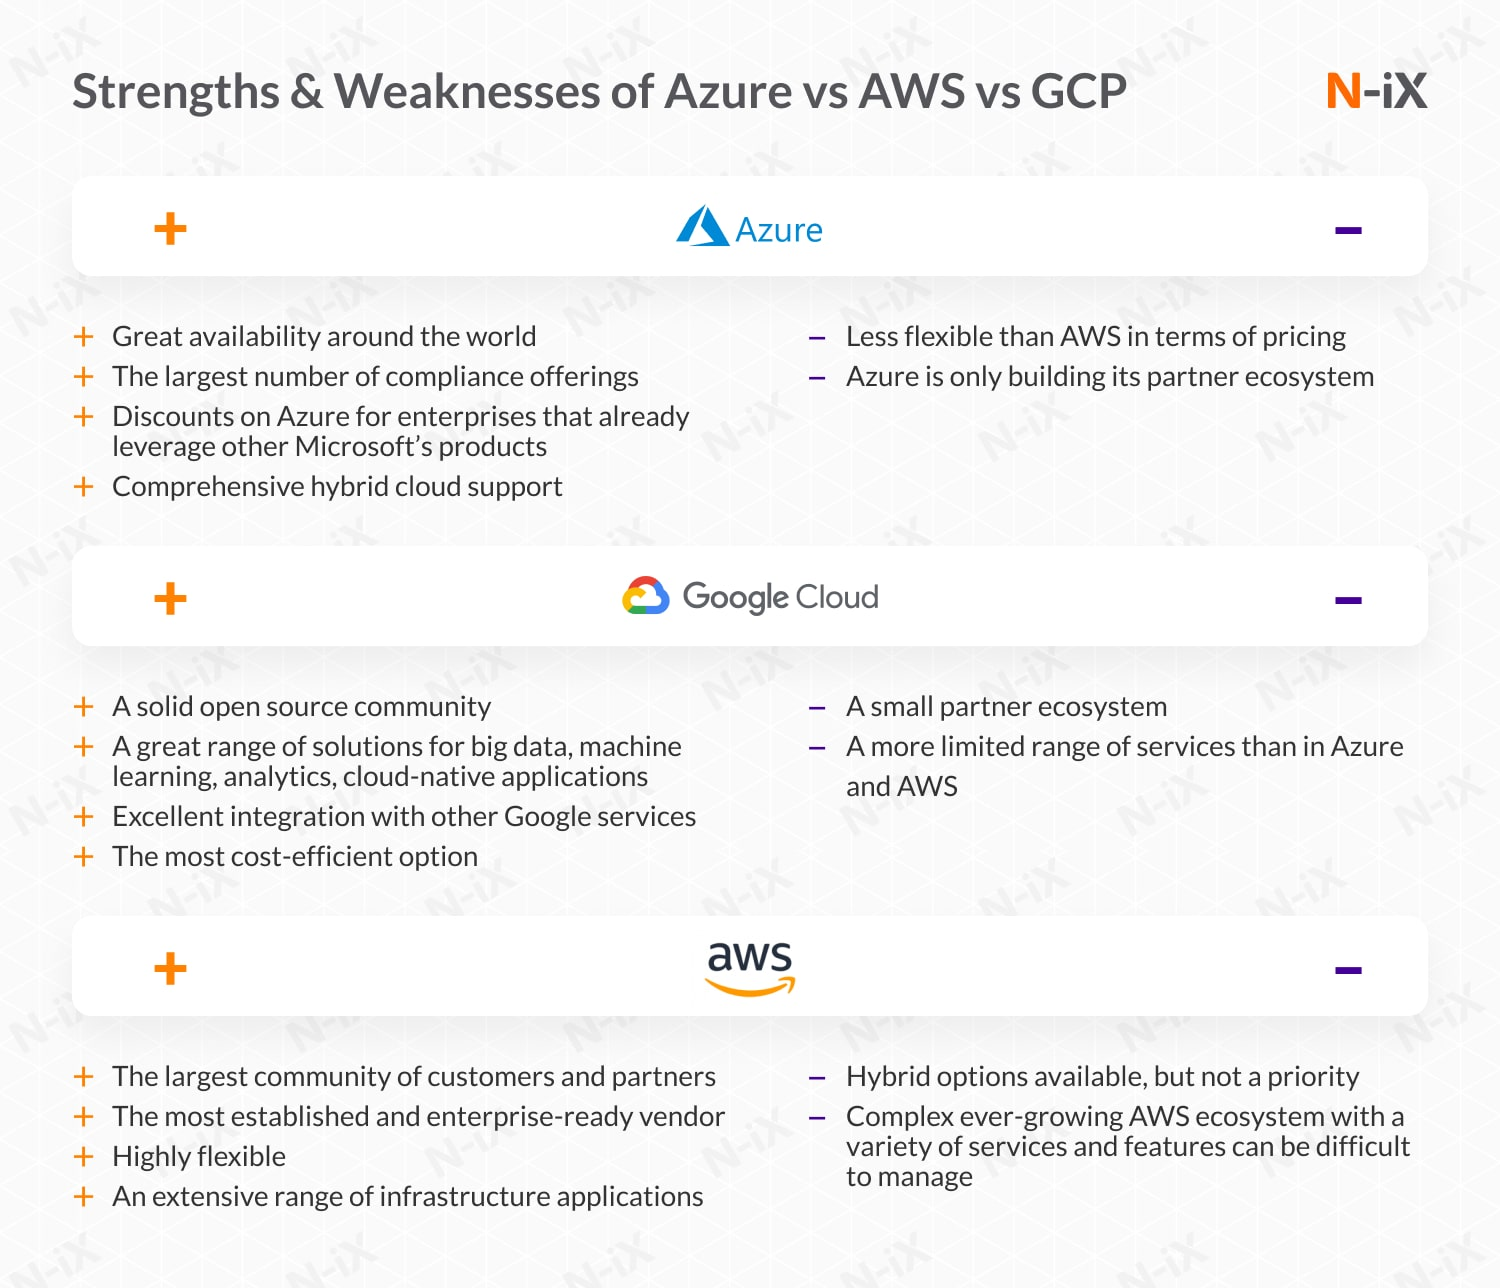 Strengths and weaknesses of Azure, AWS, and GCP